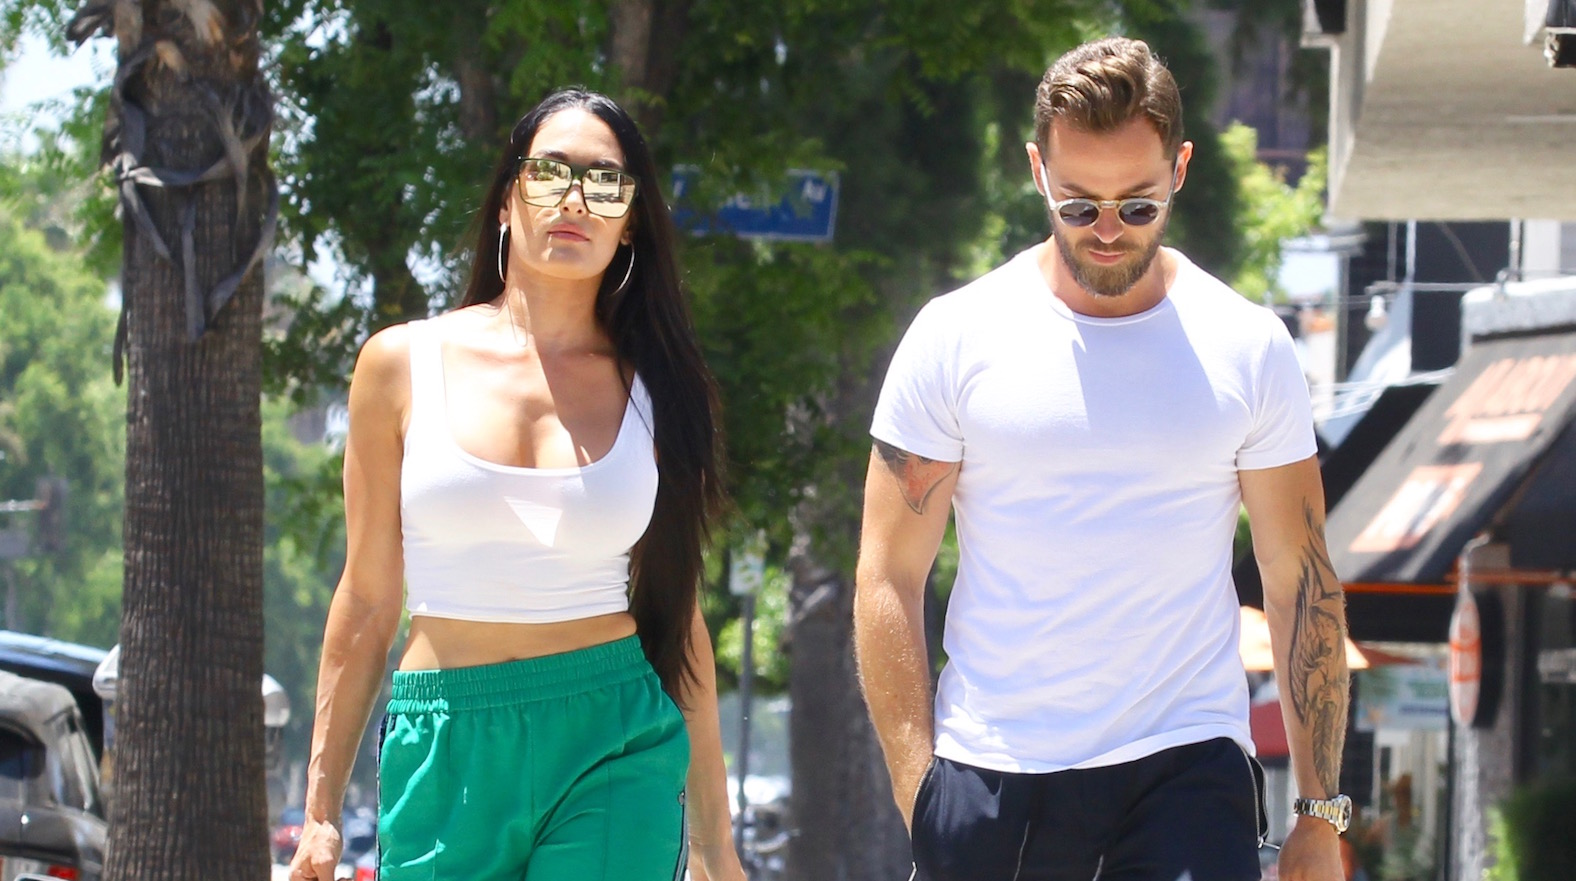 Nikki Bella and Artem Chigvintsev Run Errands Like a *Couple* After Announcing They're Officially 'Boyfriend and Girlfriend'